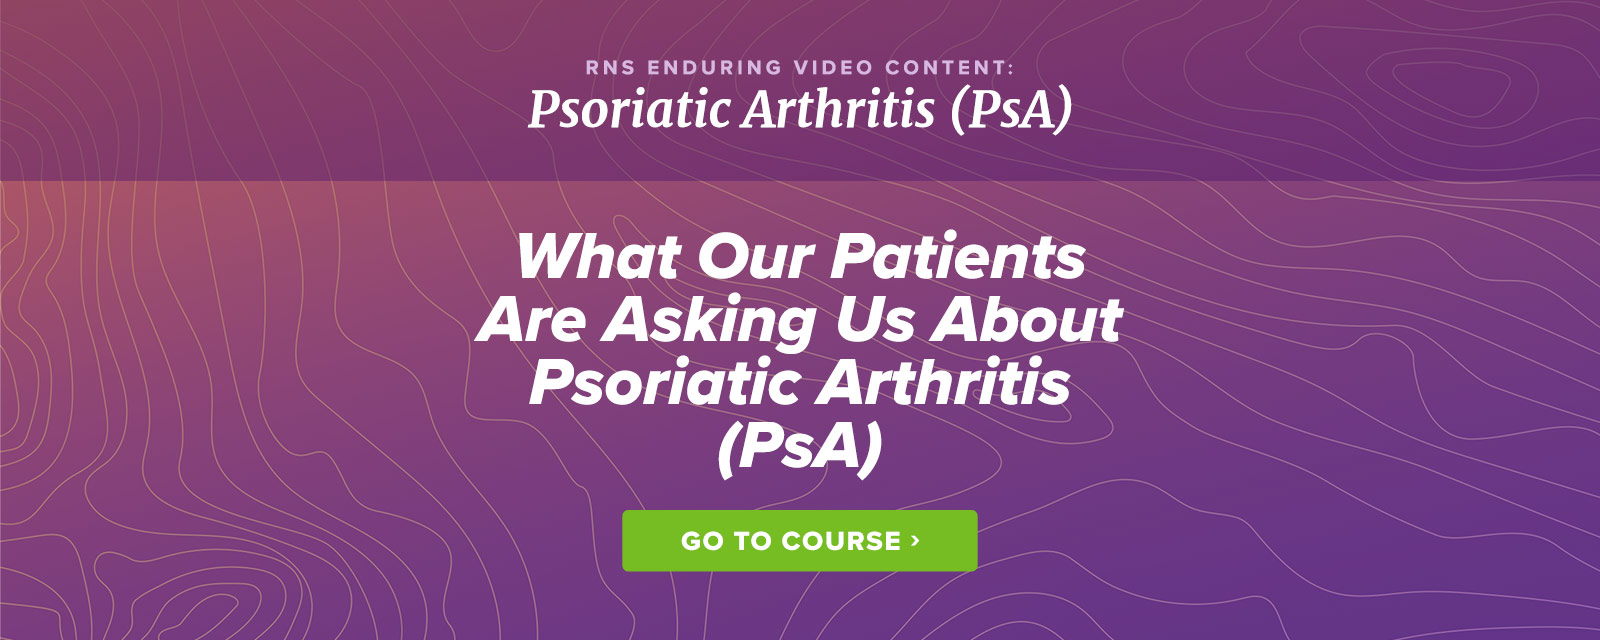 What our patients are asking us about PsA